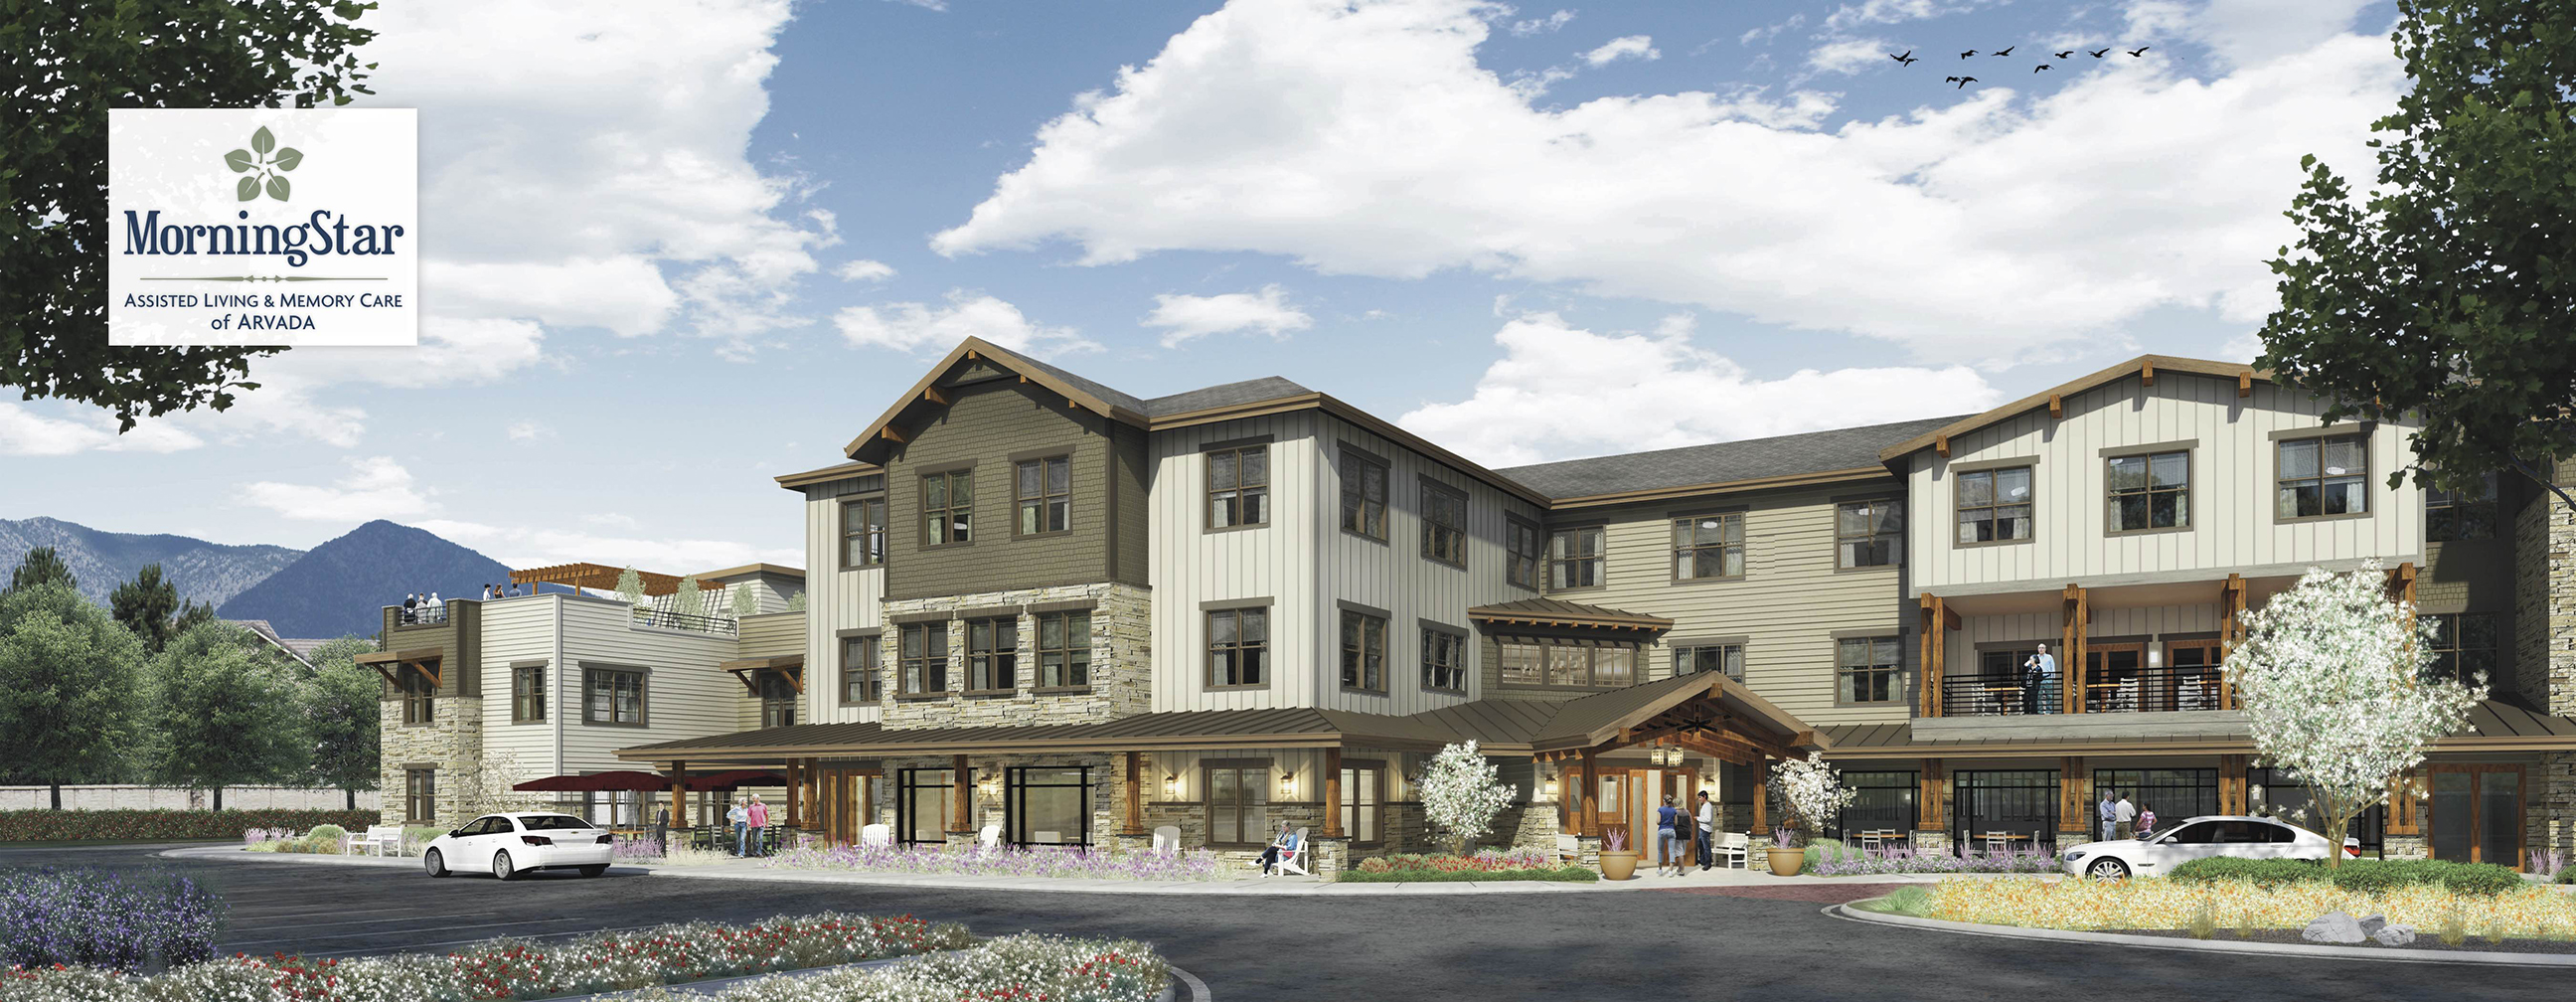 MorningStar Senior Living_Confluent Development_MorningStar Senior Living of Arvada